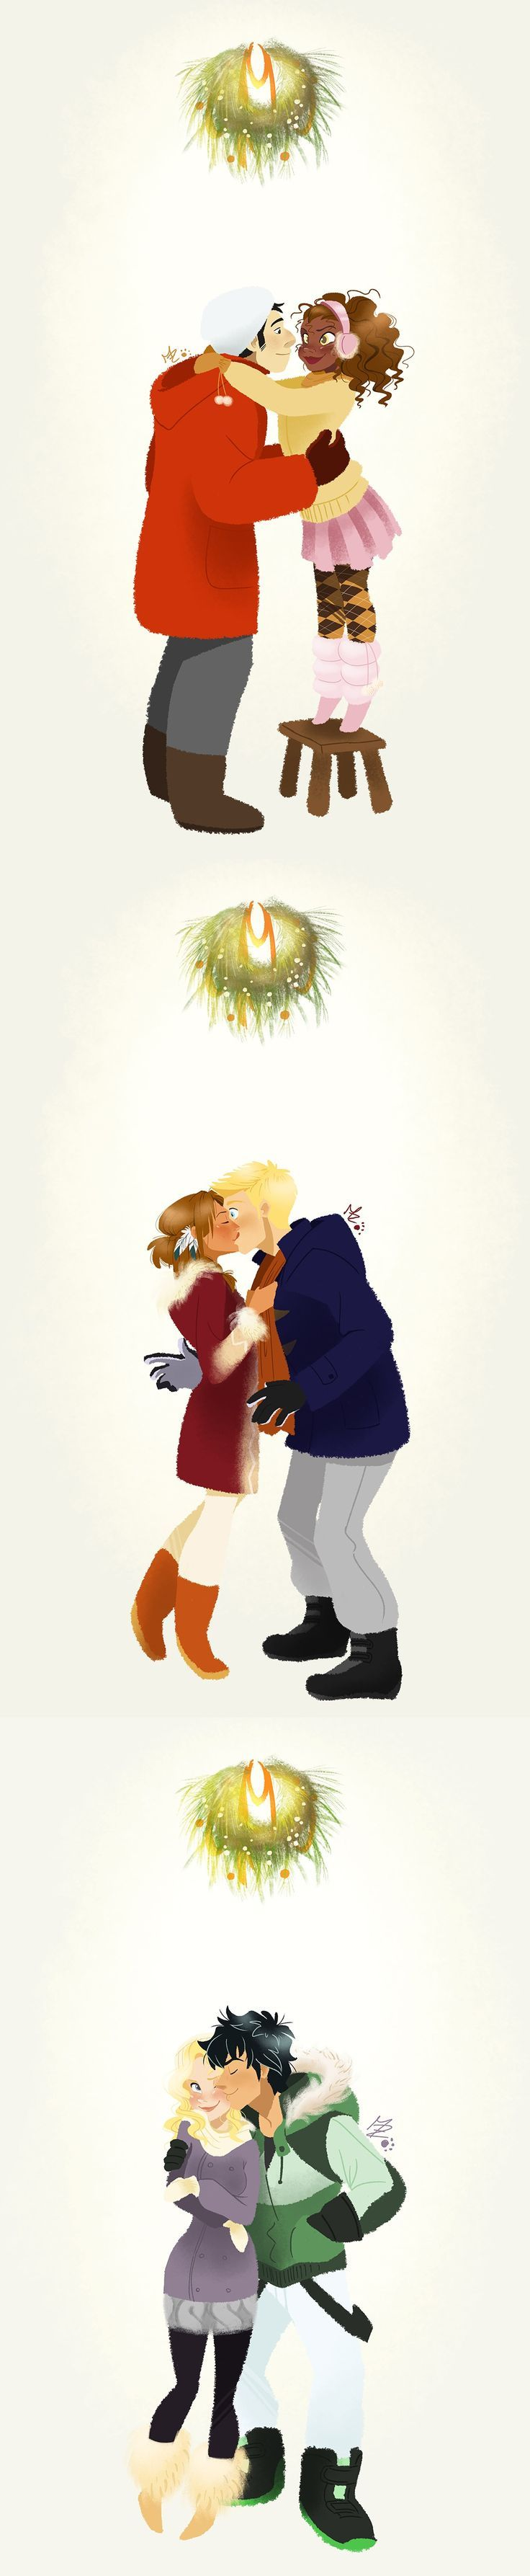 Awwwww... [PJO ships. (includes Jiper, Frazel, and the one and only Percabeth) Cute for le Holidays!]